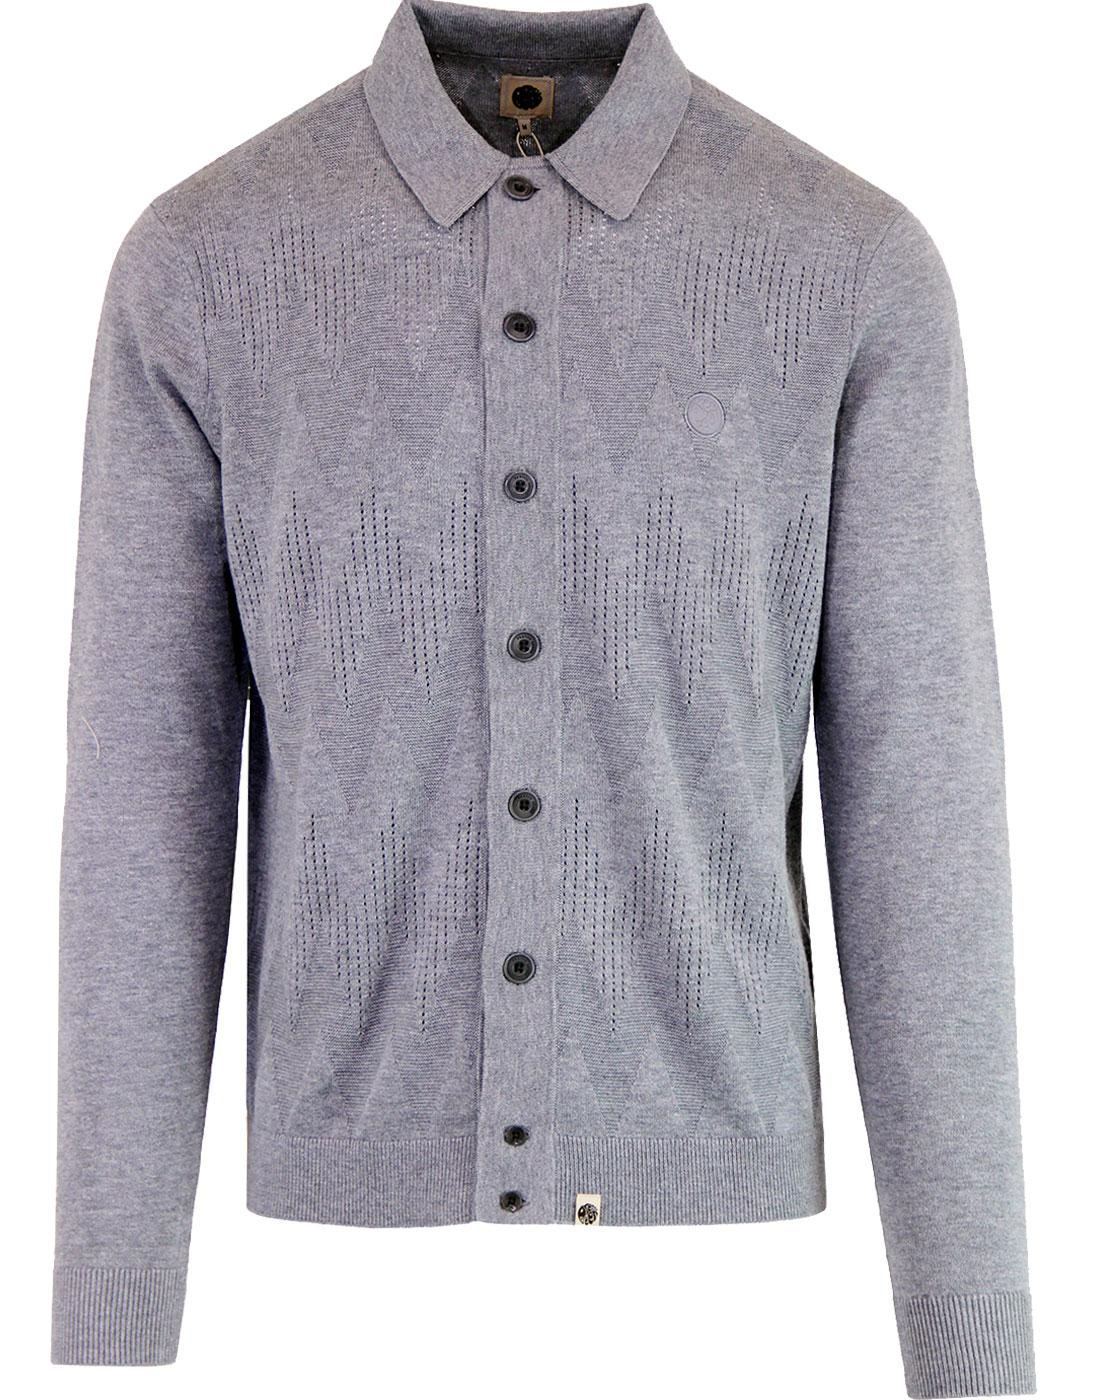 PRETTY GREEN 1960's Mod Tonal Wave Cardigan GREY